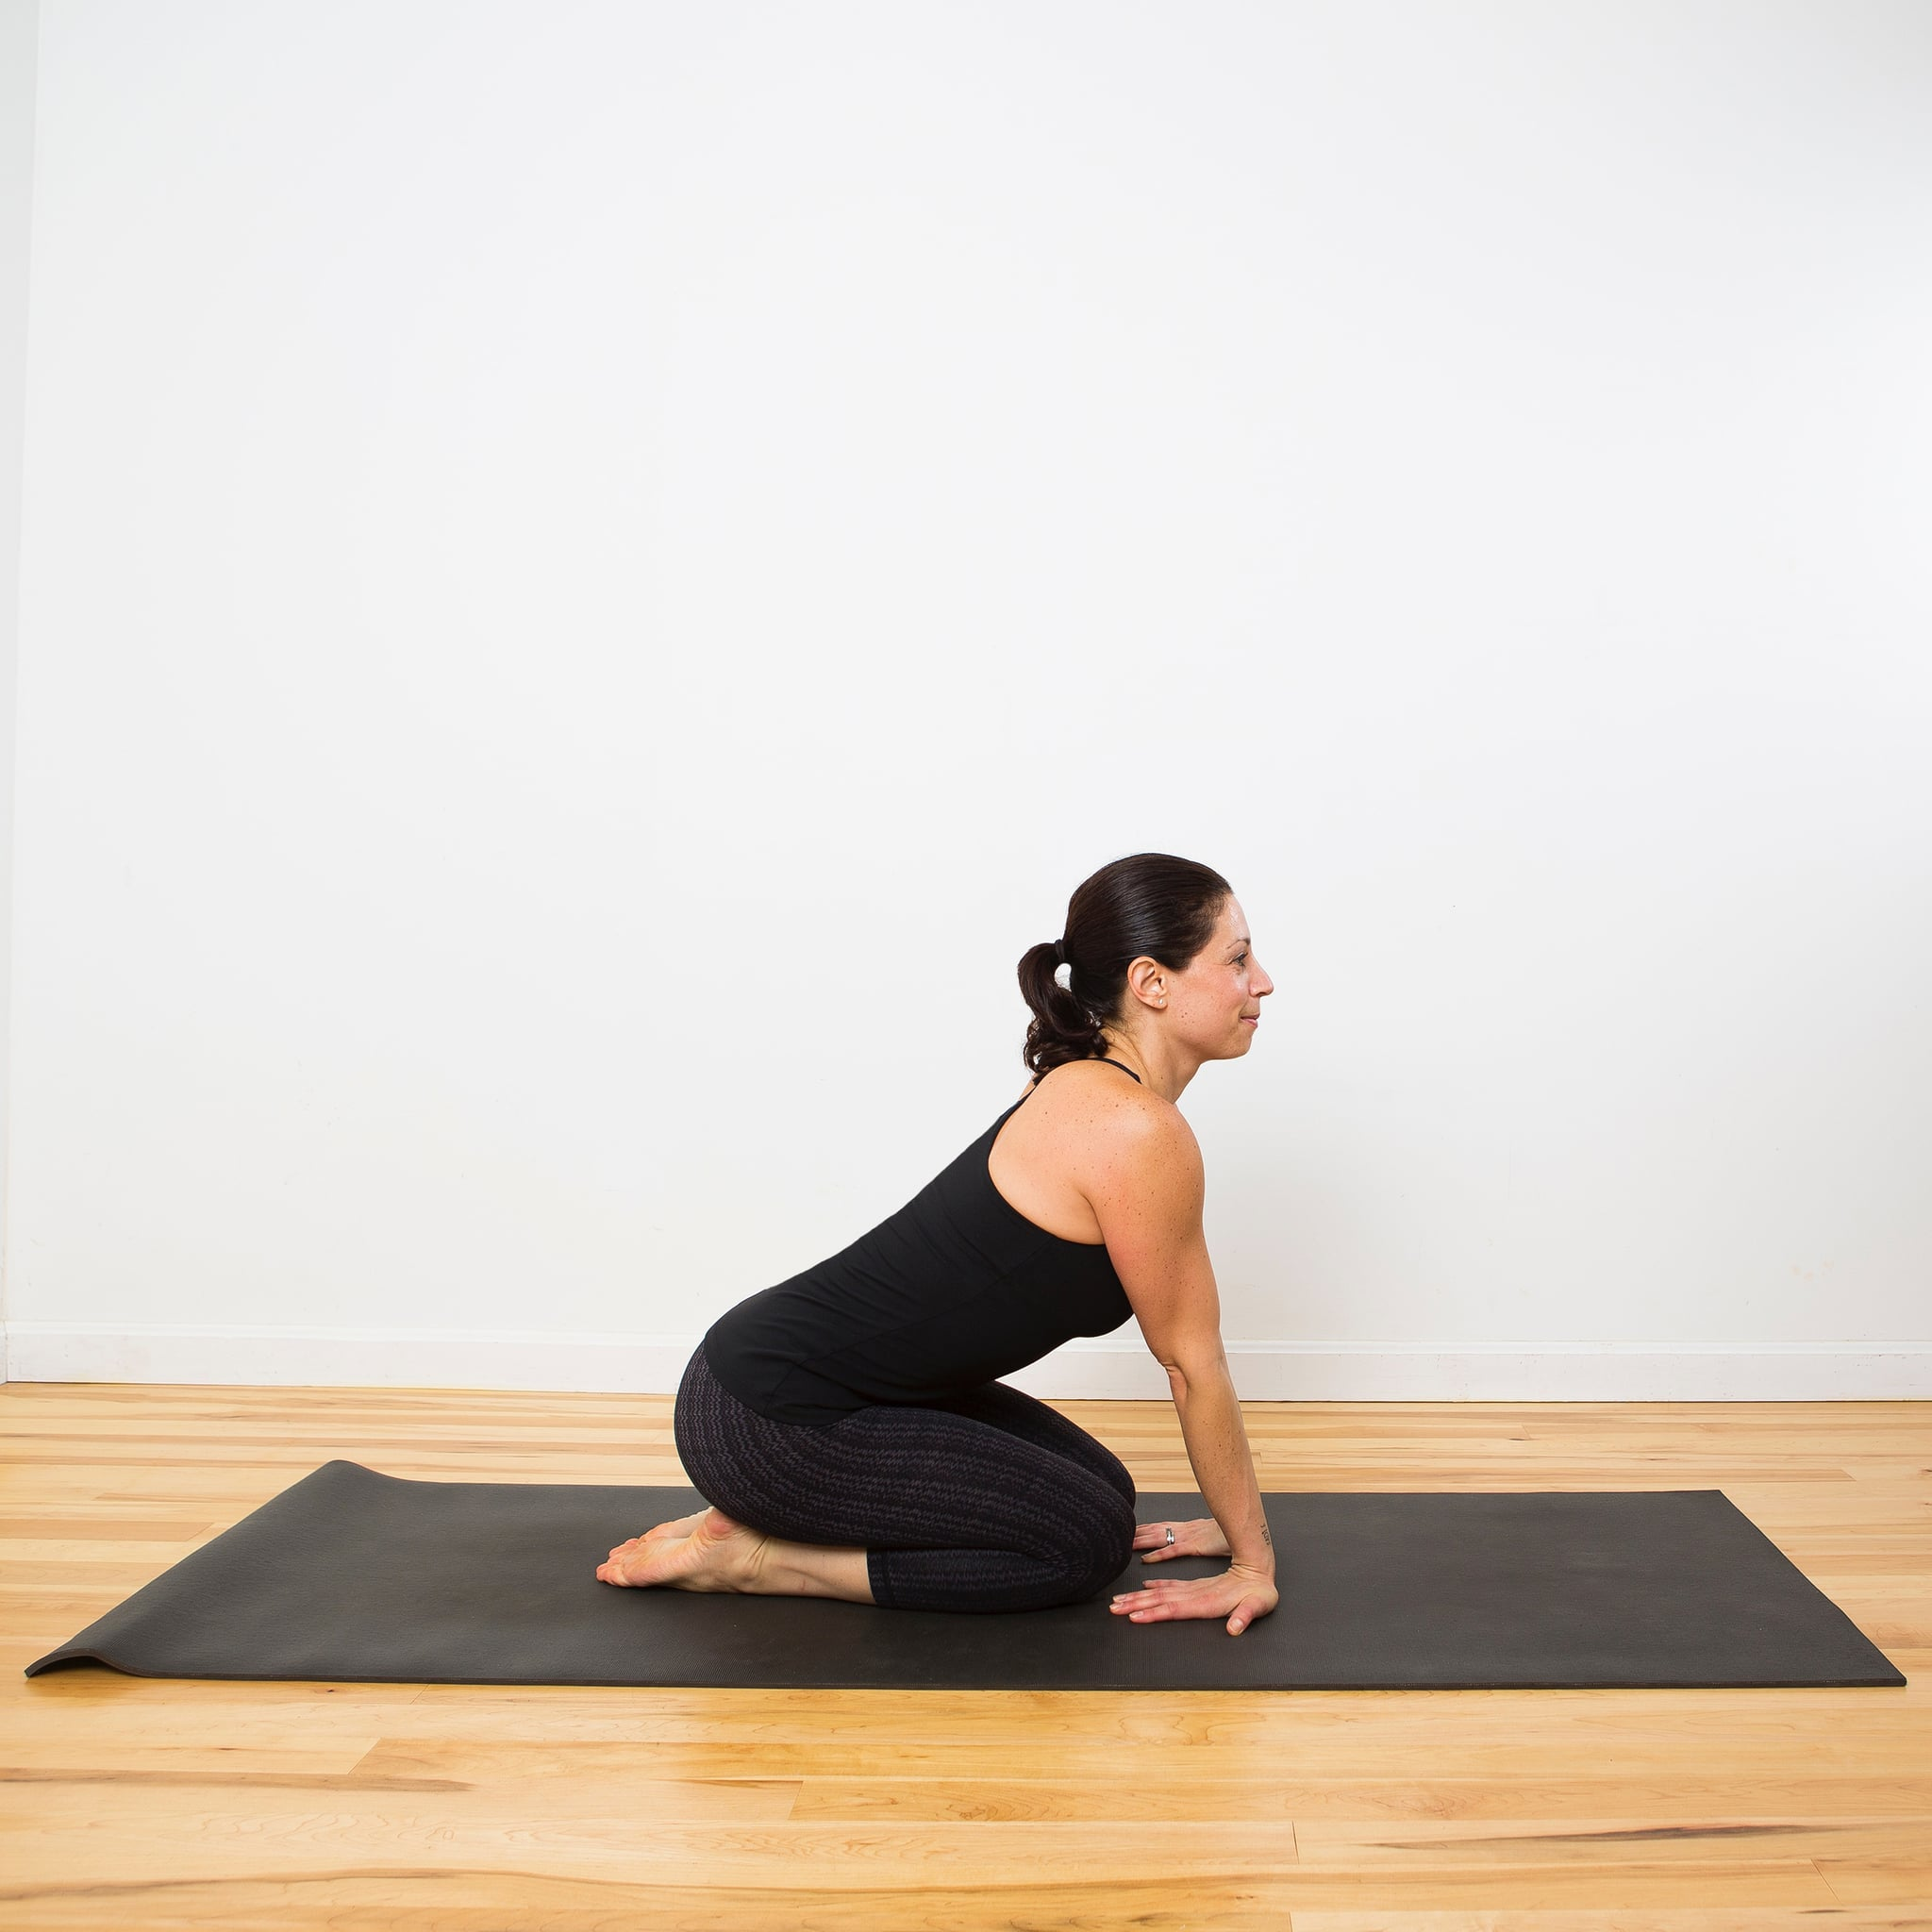 Want Handstands to Feel Easier? Do This Seated Stretch